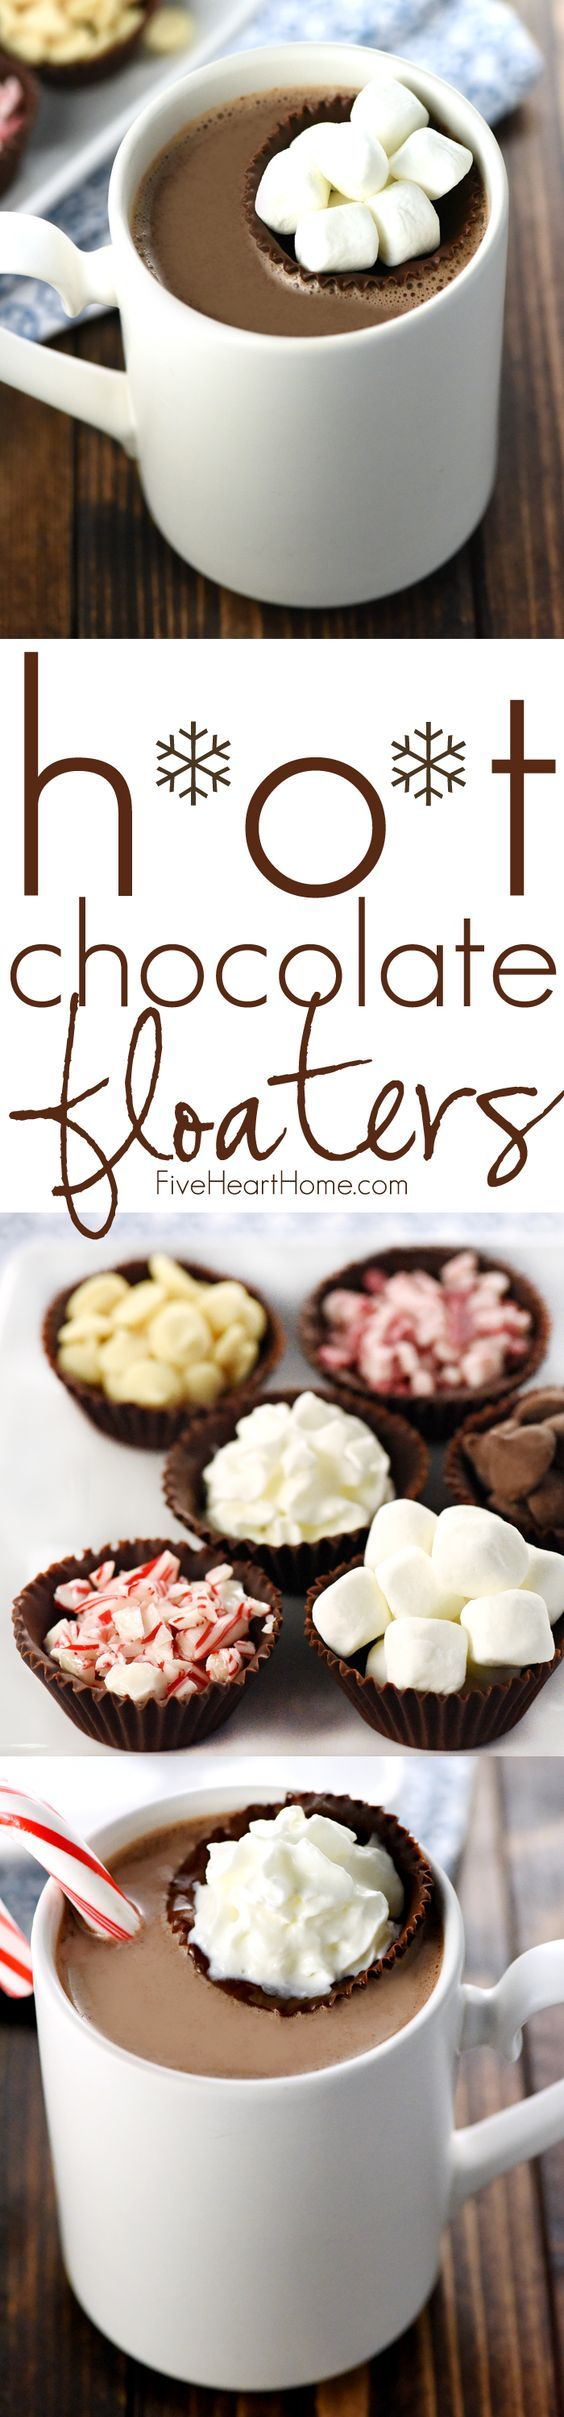 Hot Chocolate Floaters ~ little cups of chocolate make fun and tasty receptacles for marshmallows, whipped cream, or your favorite hot cocoa toppings! | FiveHeartHome.com: